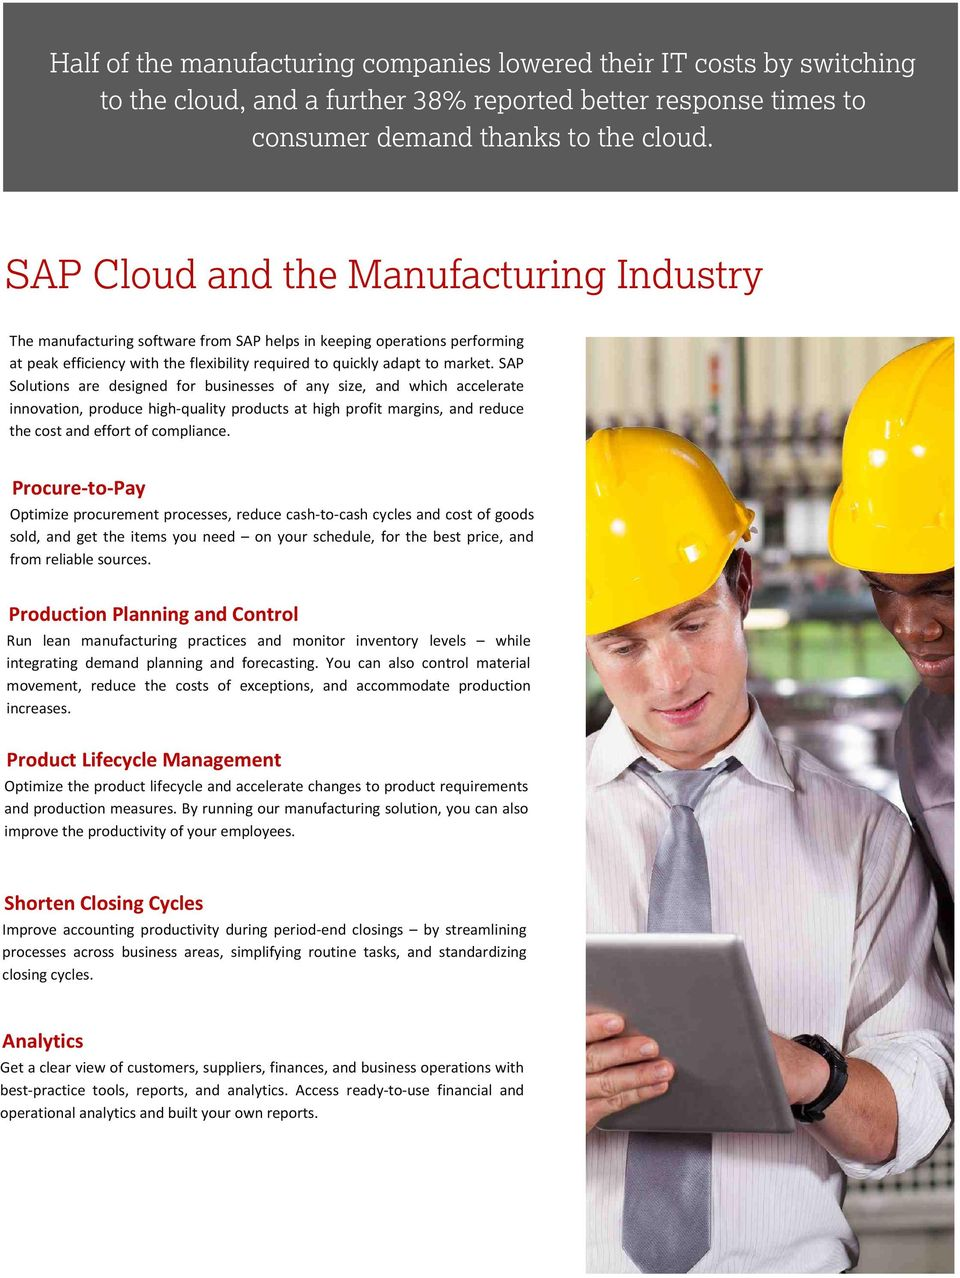 SAP Solutions are designed for businesses of any size, and which accelerate innovation, produce high-quality products at high profit margins, and reduce the cost and effort of compliance.